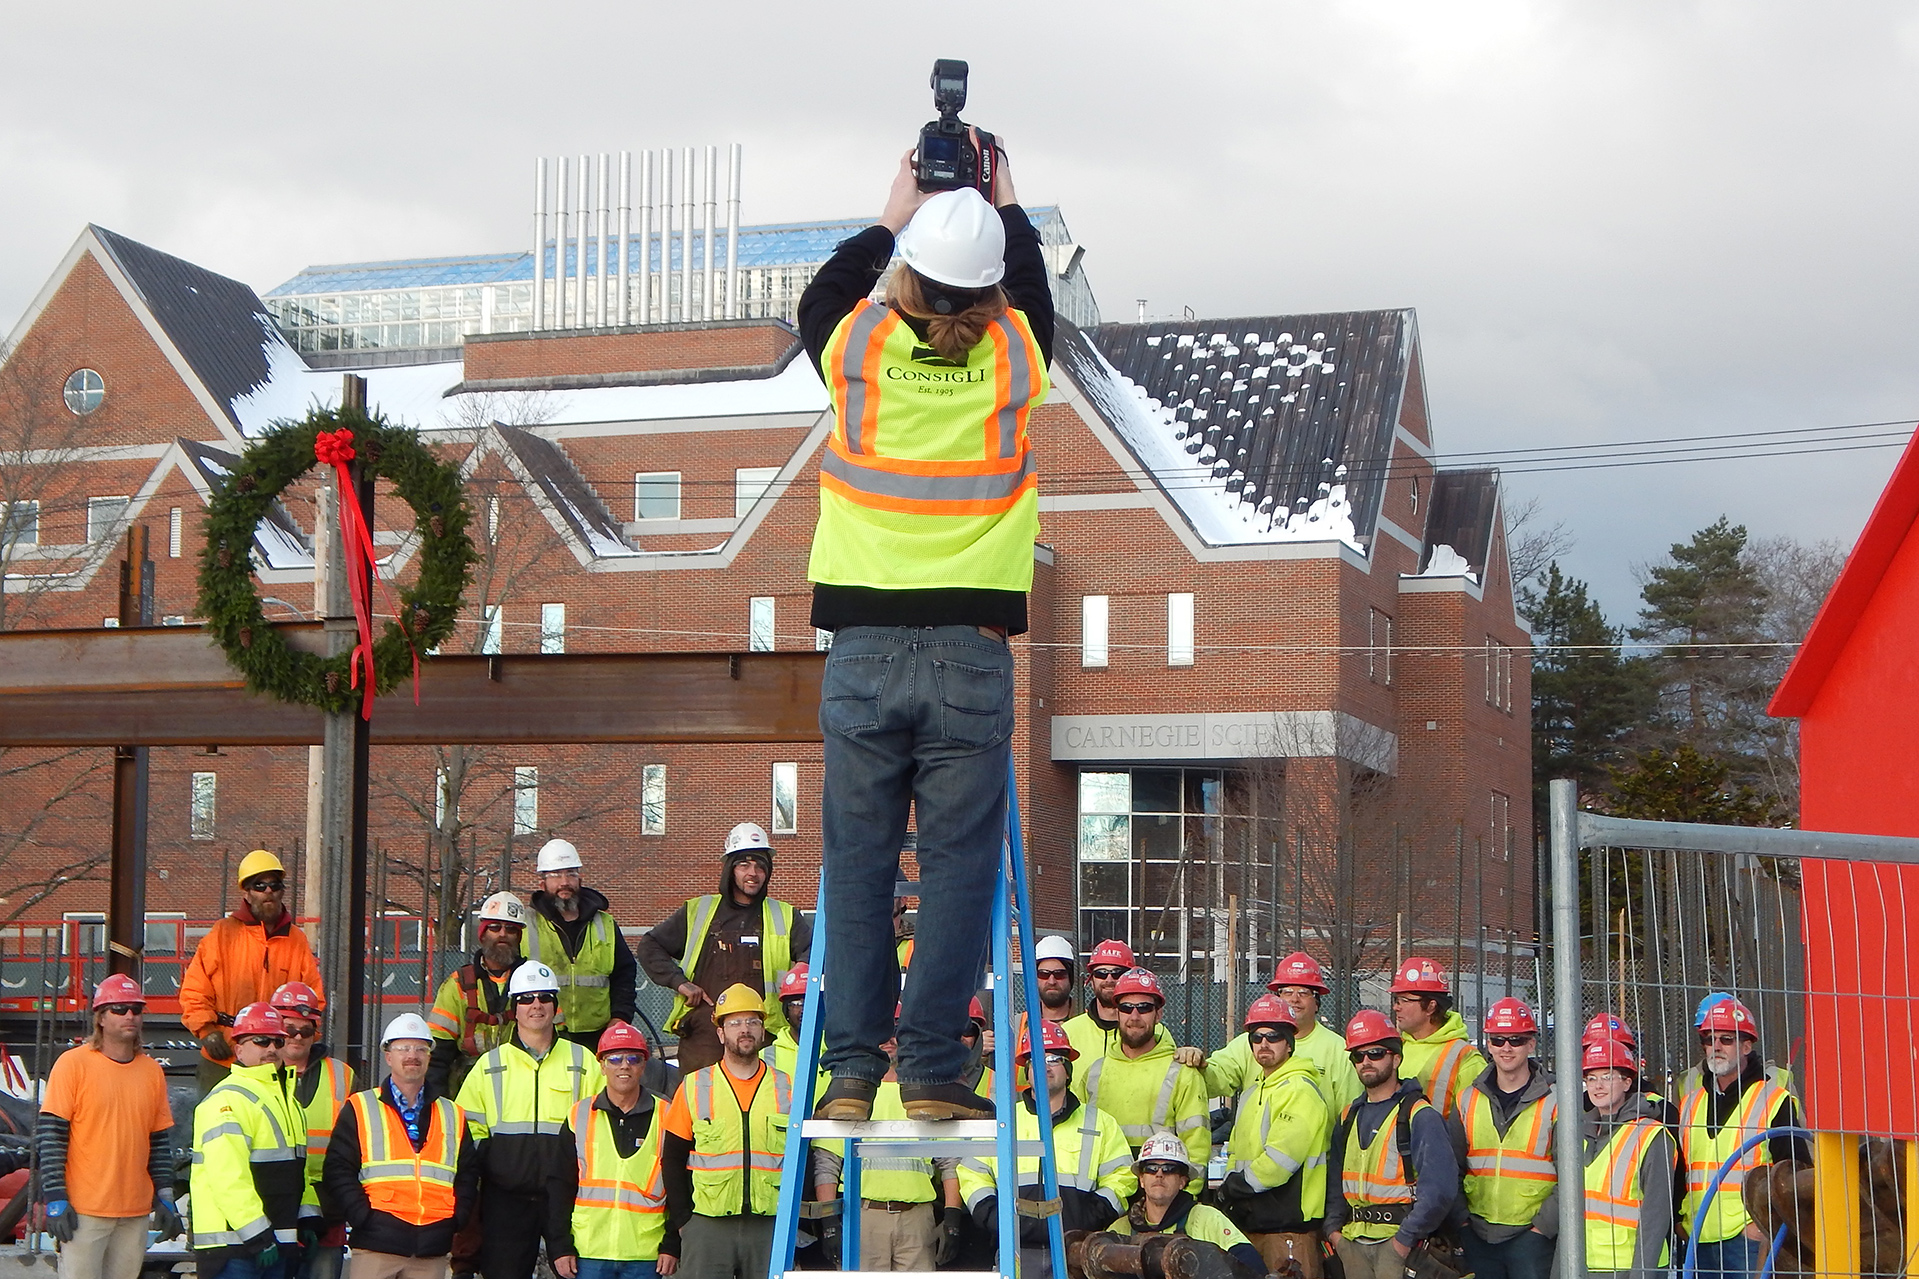 Multimedia producer Theophil Syslo puts the Campus Construction Update ladder to good use on Dec. 5 as he photographs a wreath and workers at the Bonney Science Center. The image was presented to Michael Bonney '80 and Alison Grott Bonney '80, whose family foundation made a gift that is anchoring the building project. (Doug Hubley/Bates College)